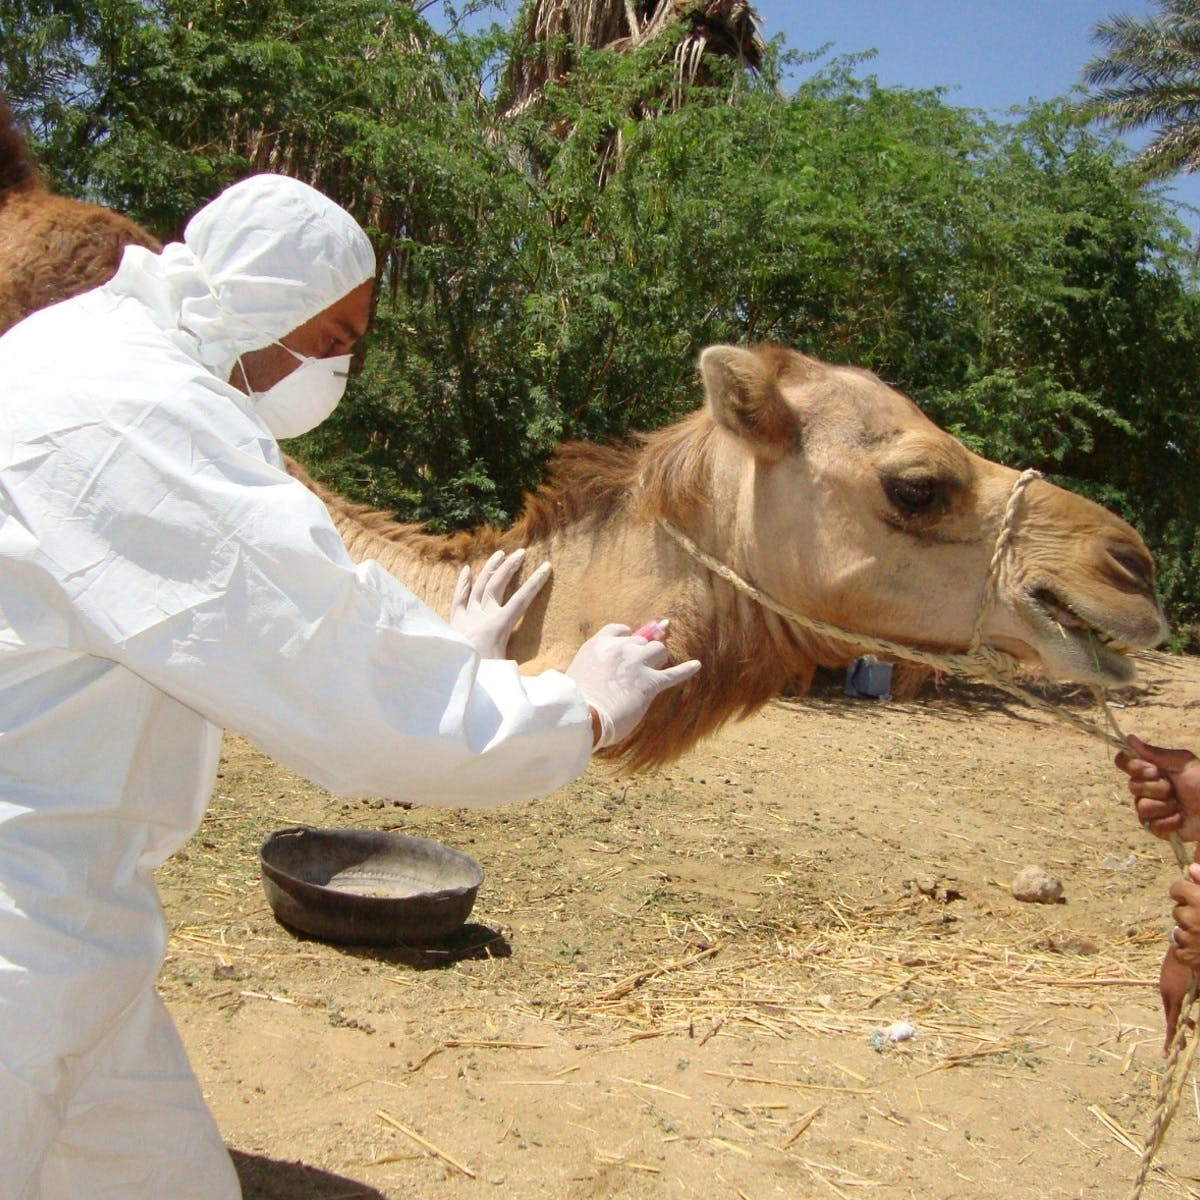 Global Health at the Human-Animal-Ecosystem Interface